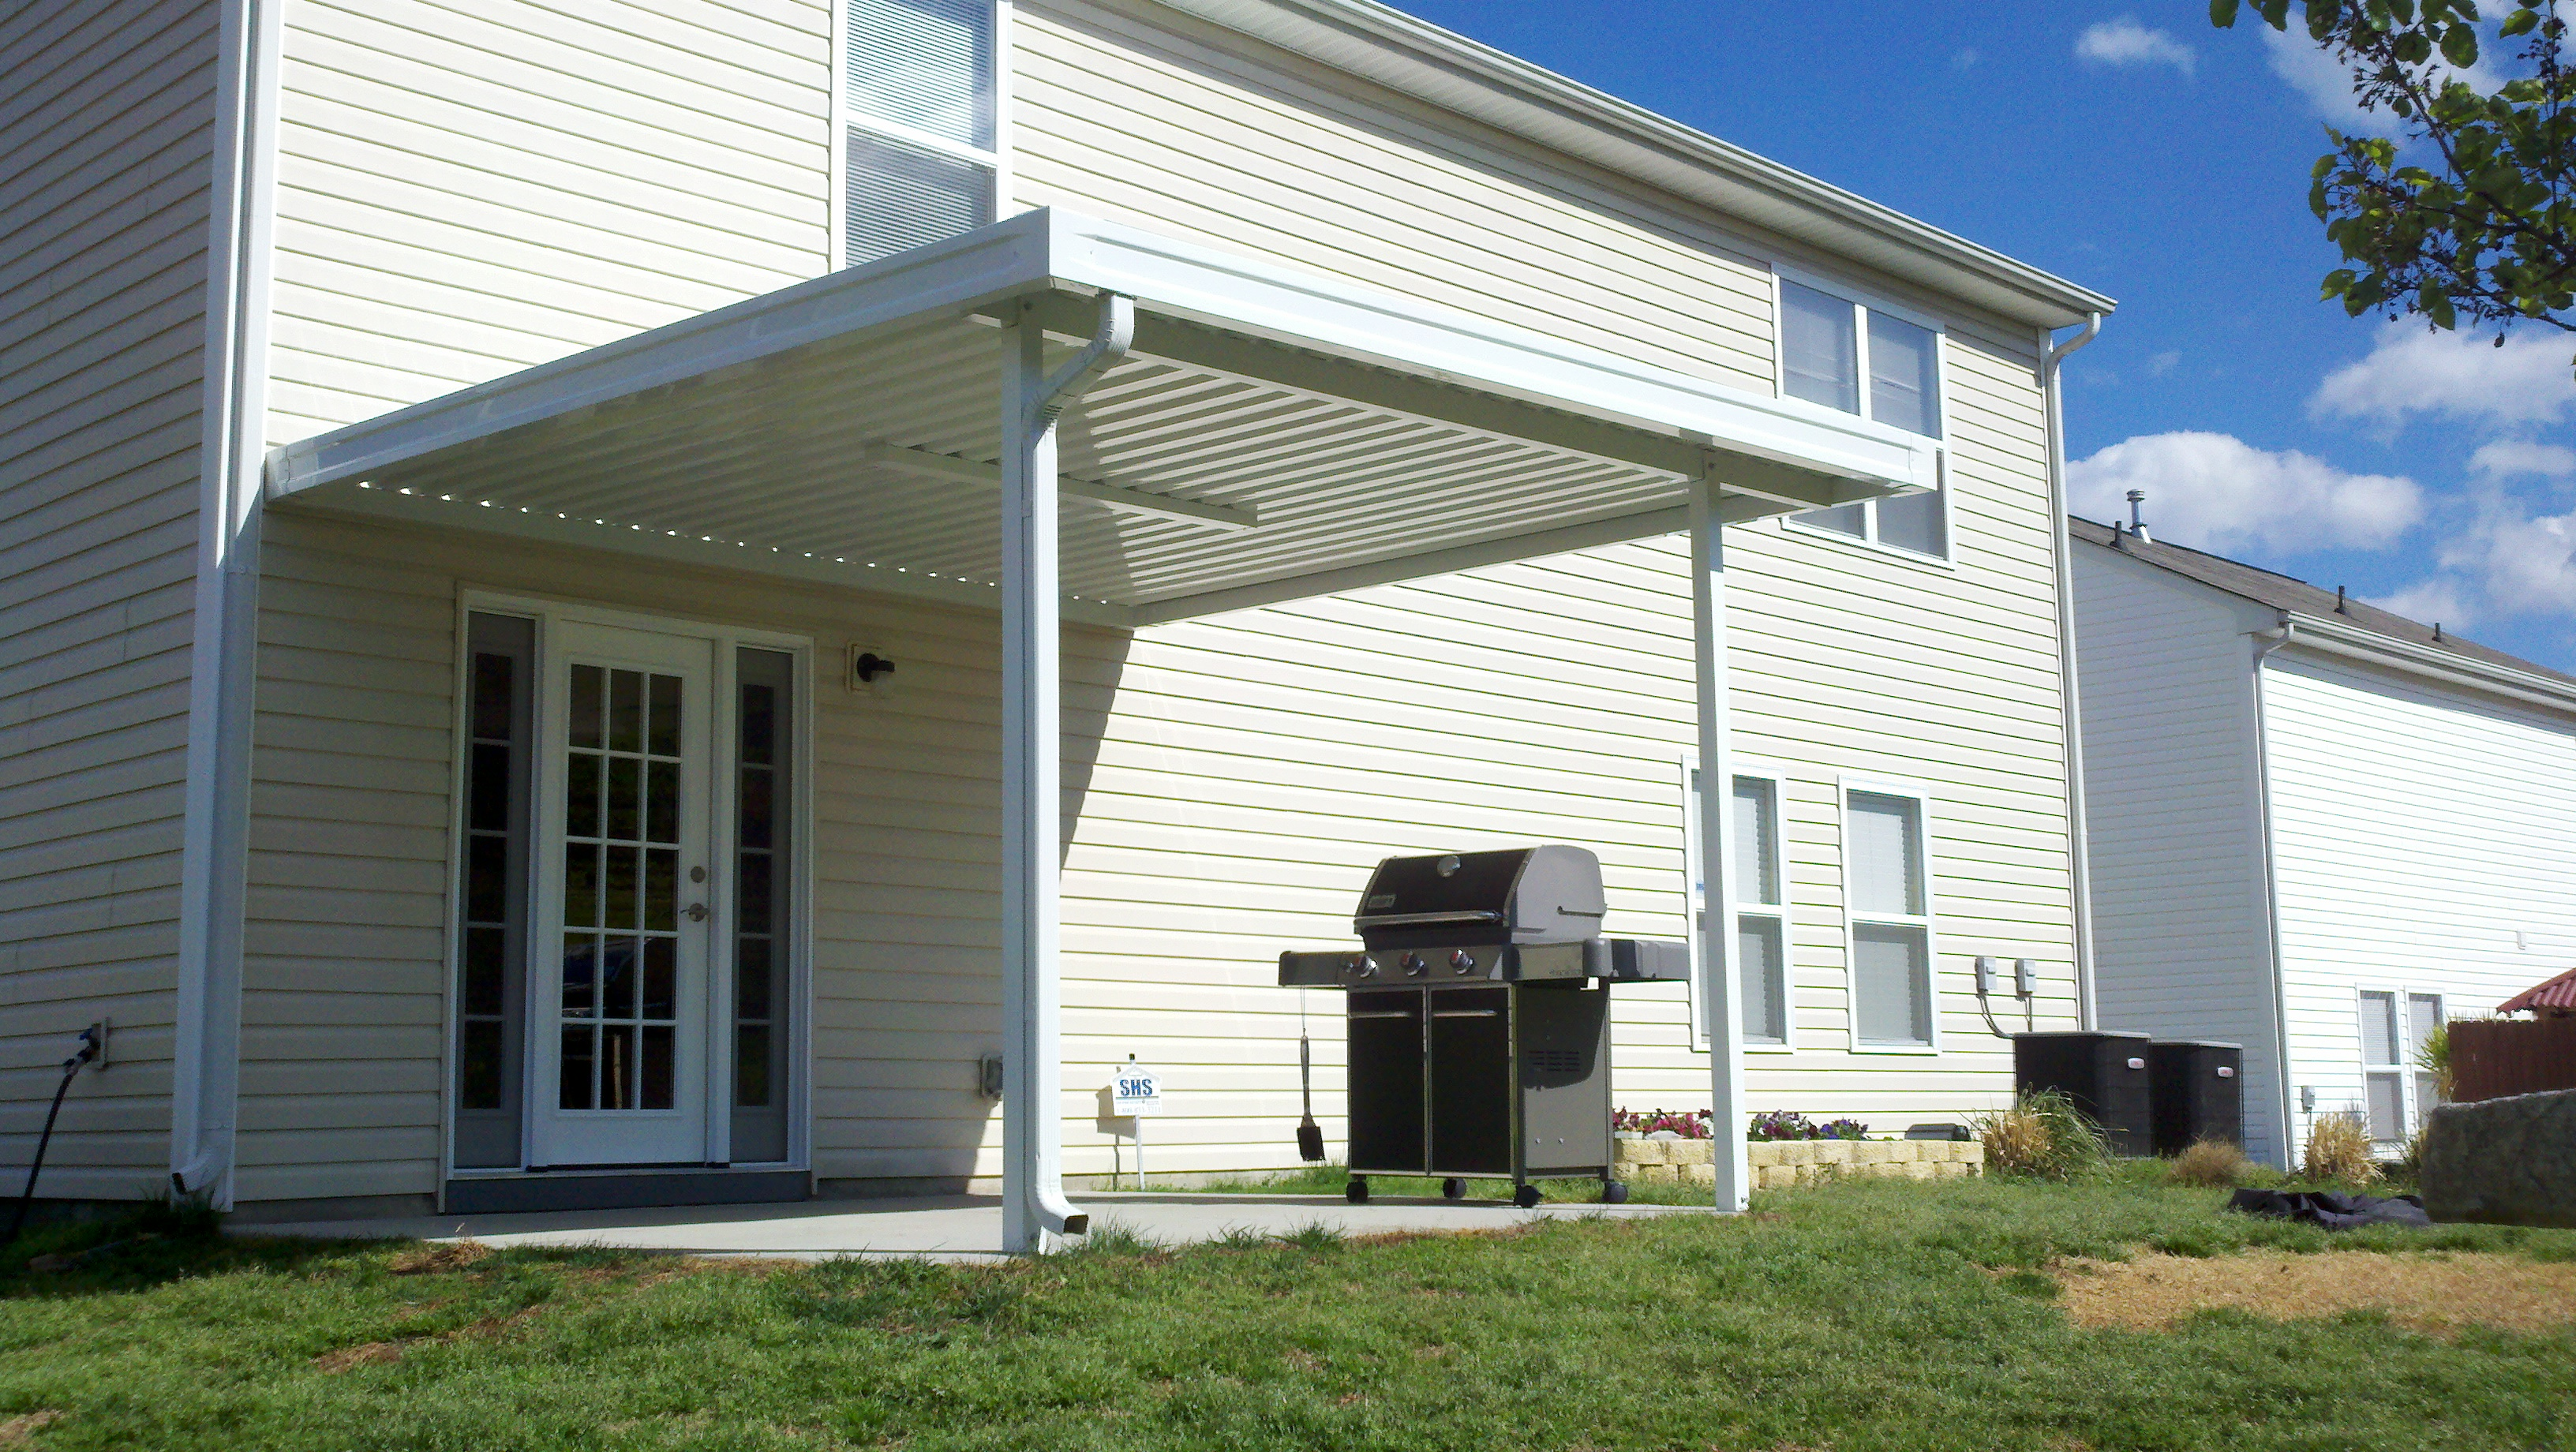 porch awning adds home living for awnings the to aluminum and this shade space pin porches